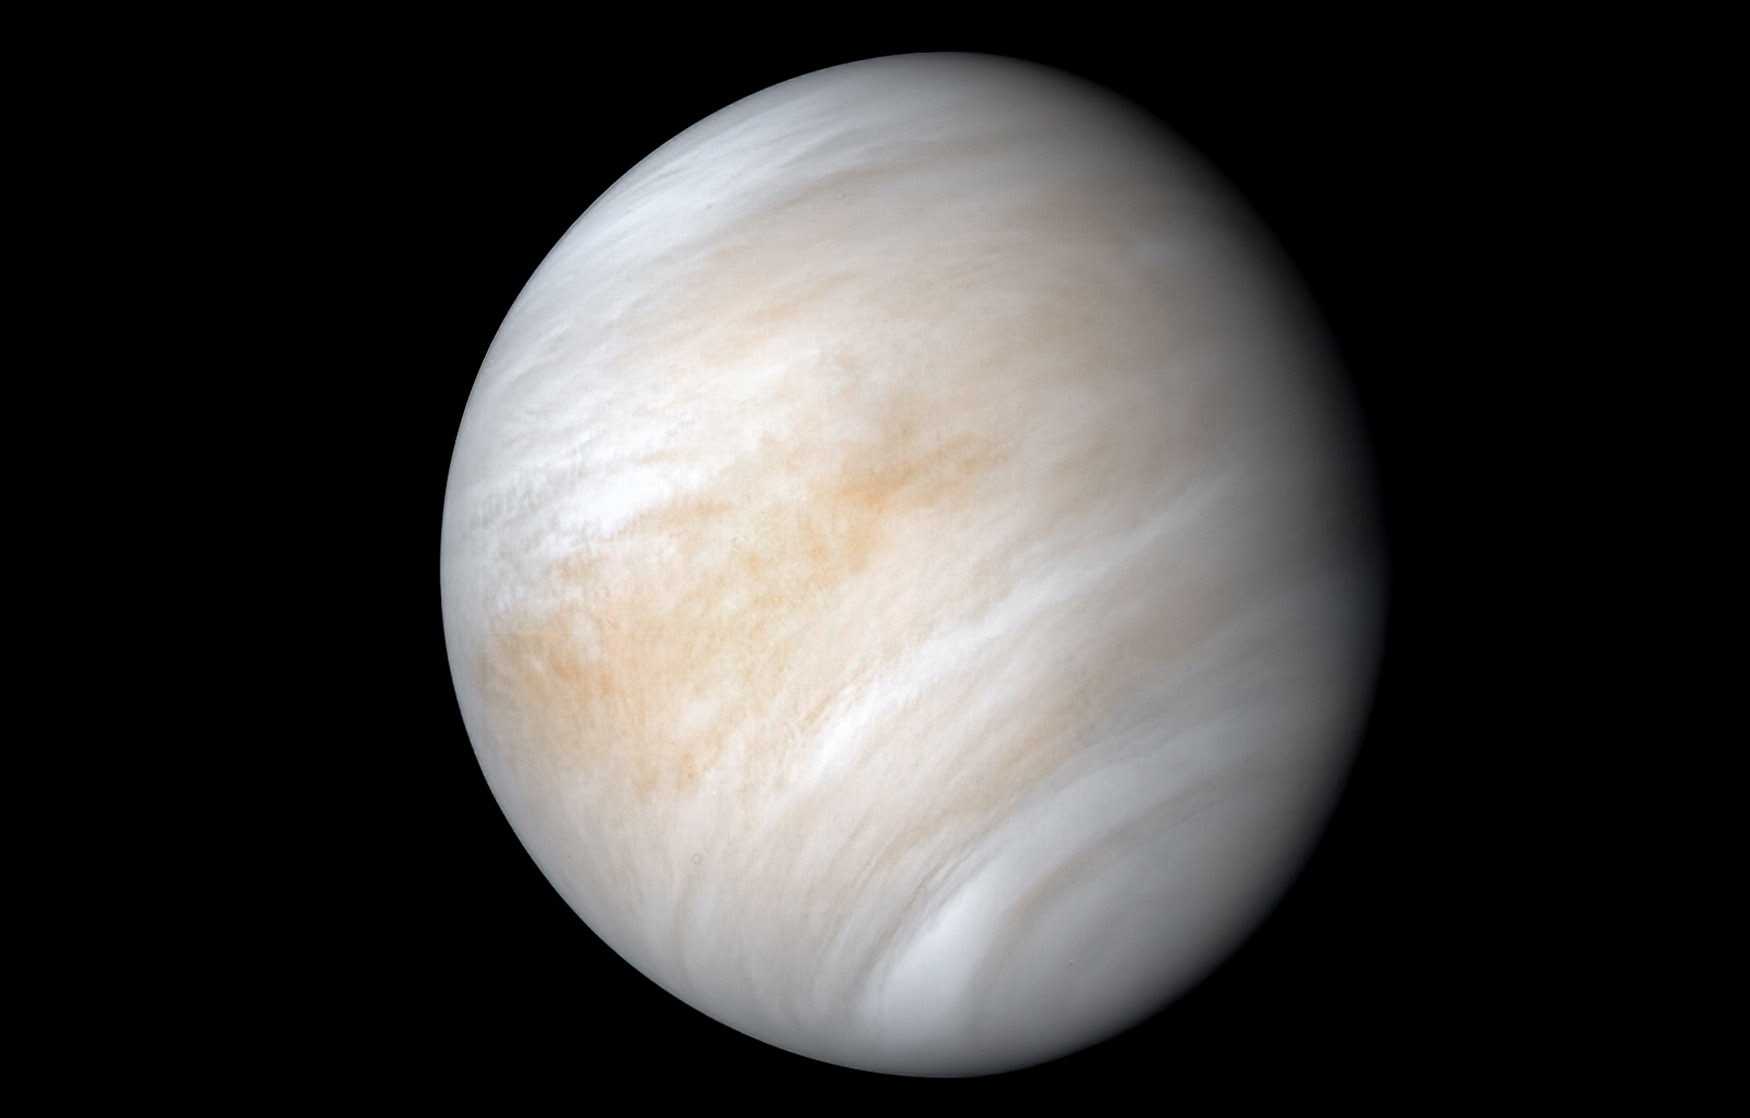 If there's life on Venus, where did it come from? - BGR